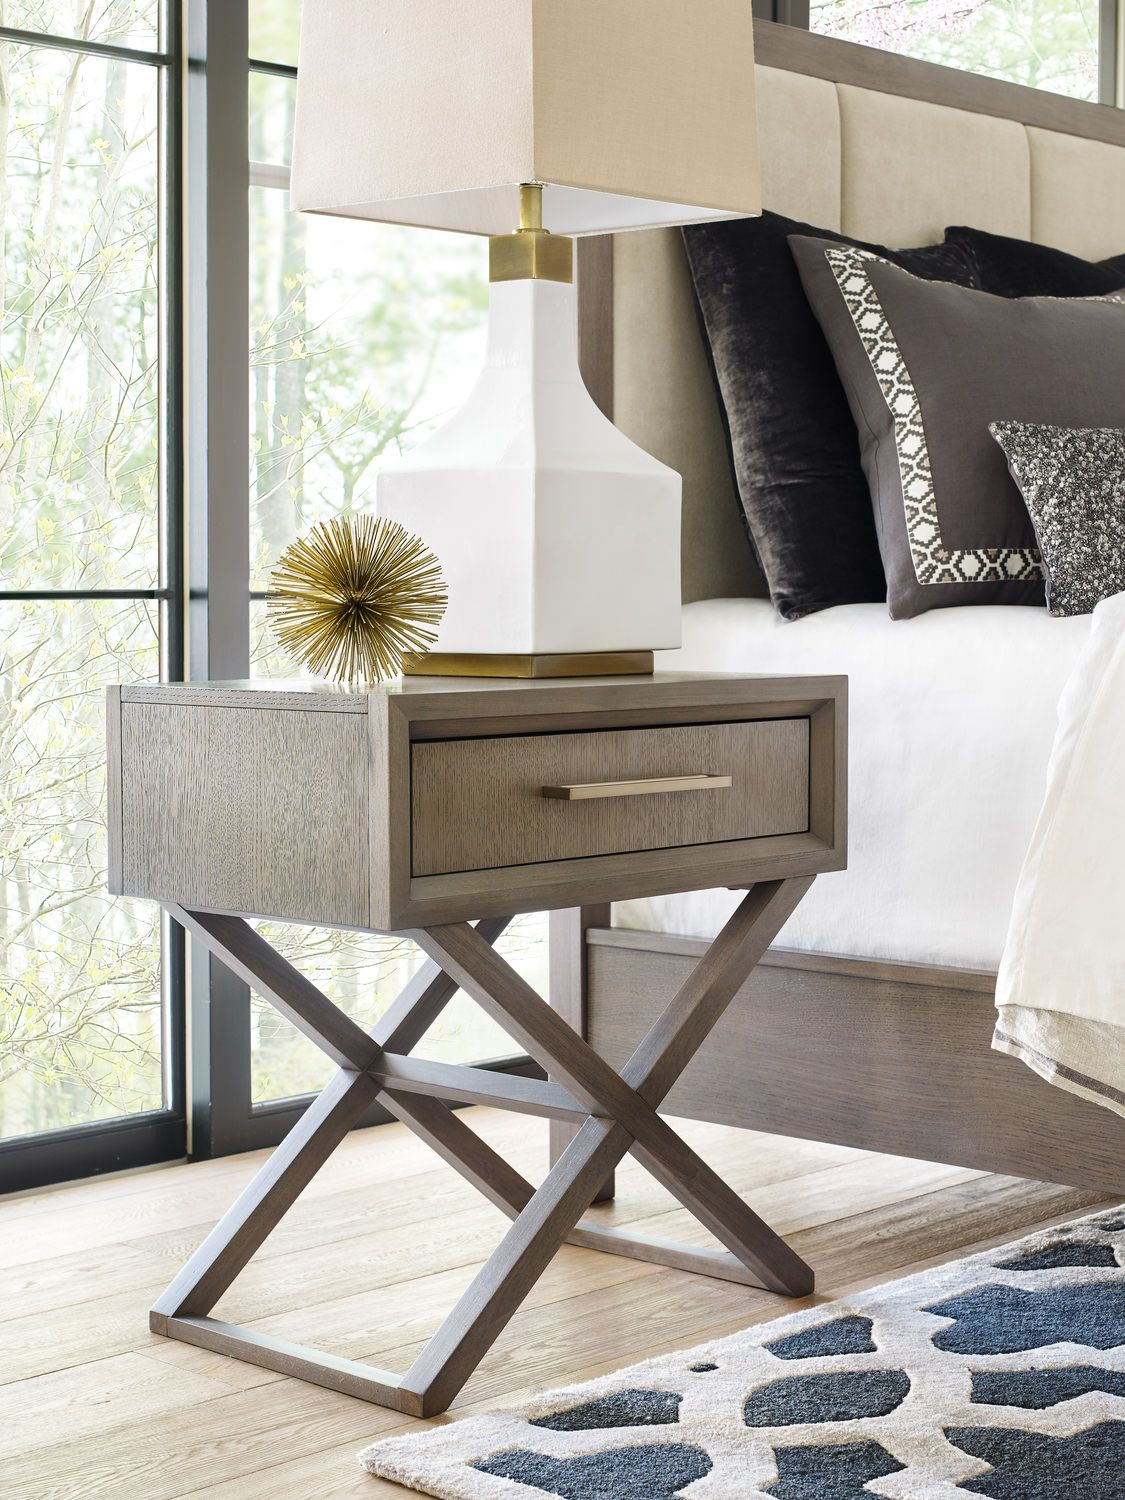 Highline Bedside Chest | HOM Furniture | Furniture Stores in ... on transportation minneapolis mn, restaurants minneapolis mn, hotels minneapolis mn, weather minneapolis mn,